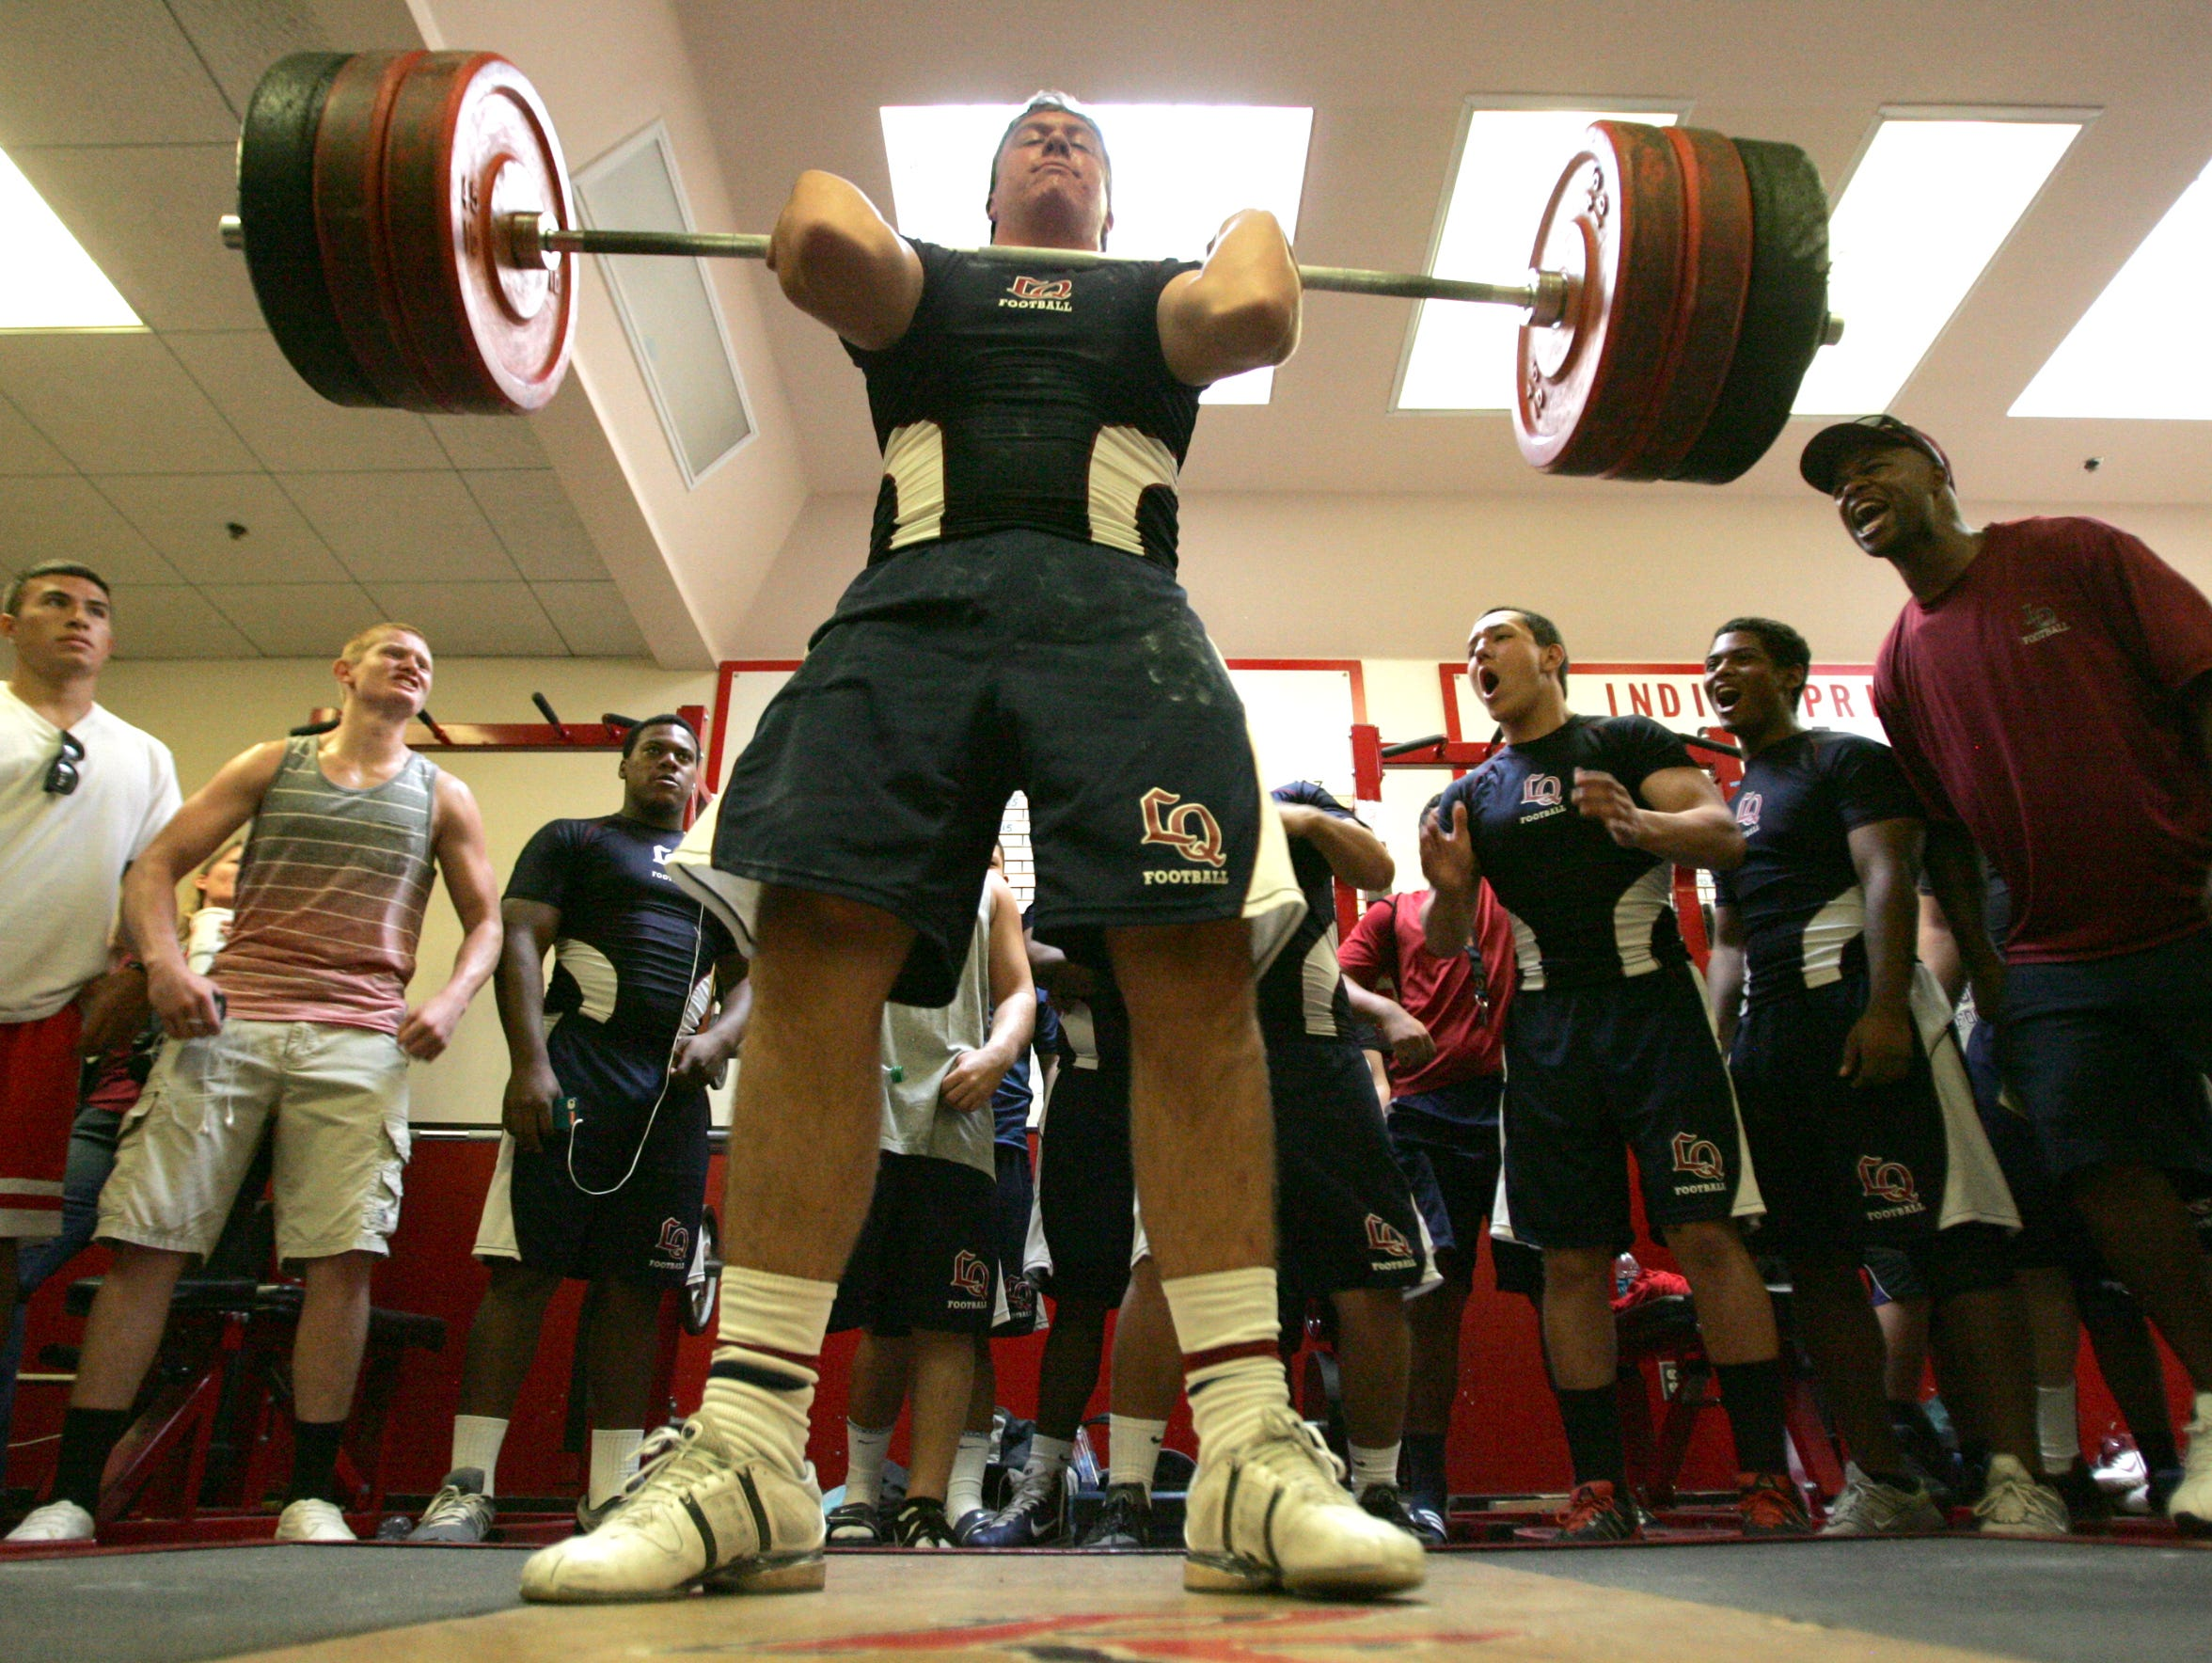 Ben Simonds, shown here at 16, power cleans 350 lbs